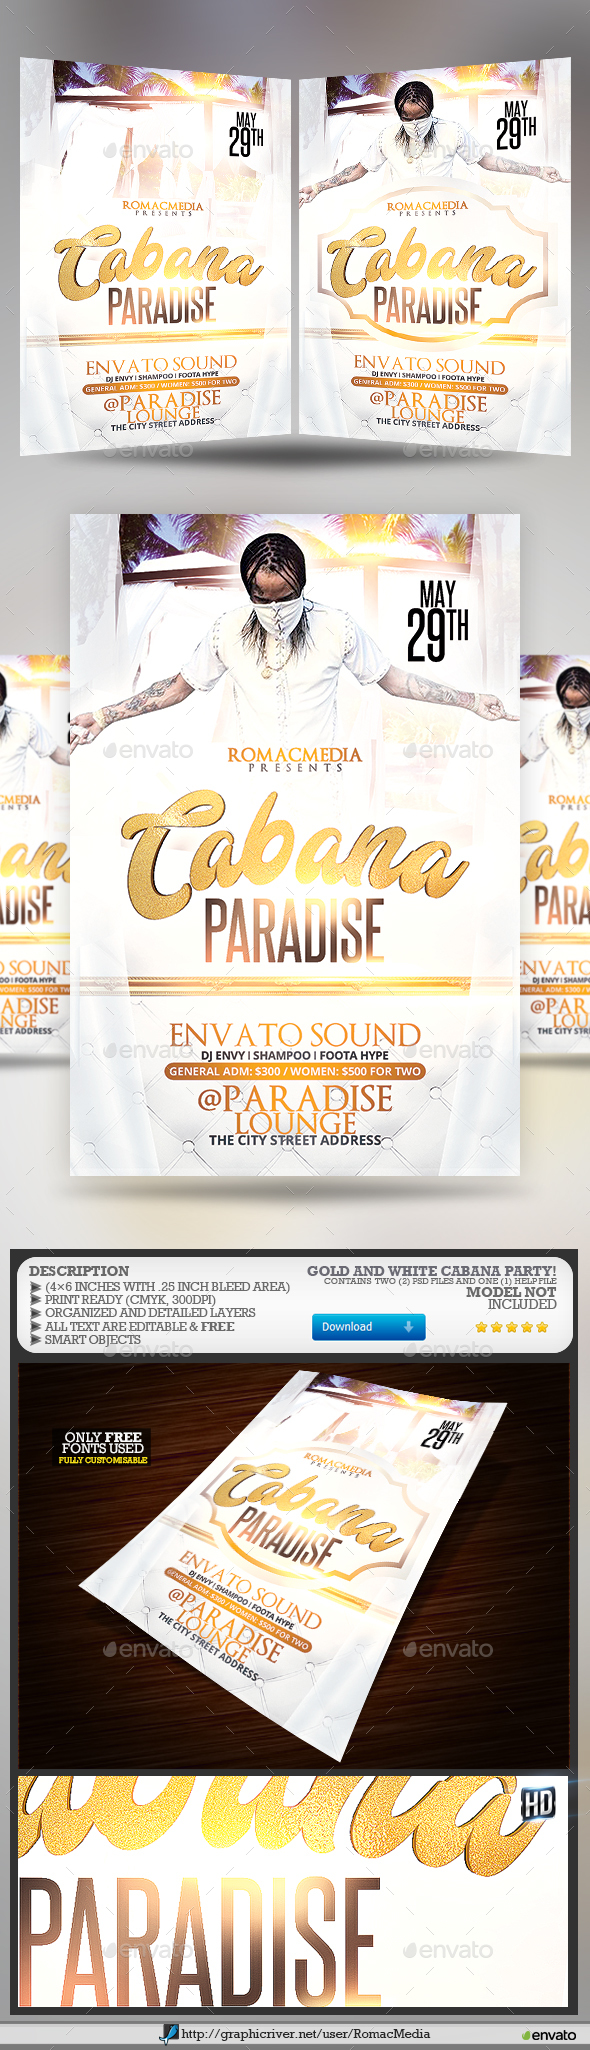 White and Gold Cabana Party Flyer - Clubs & Parties Events